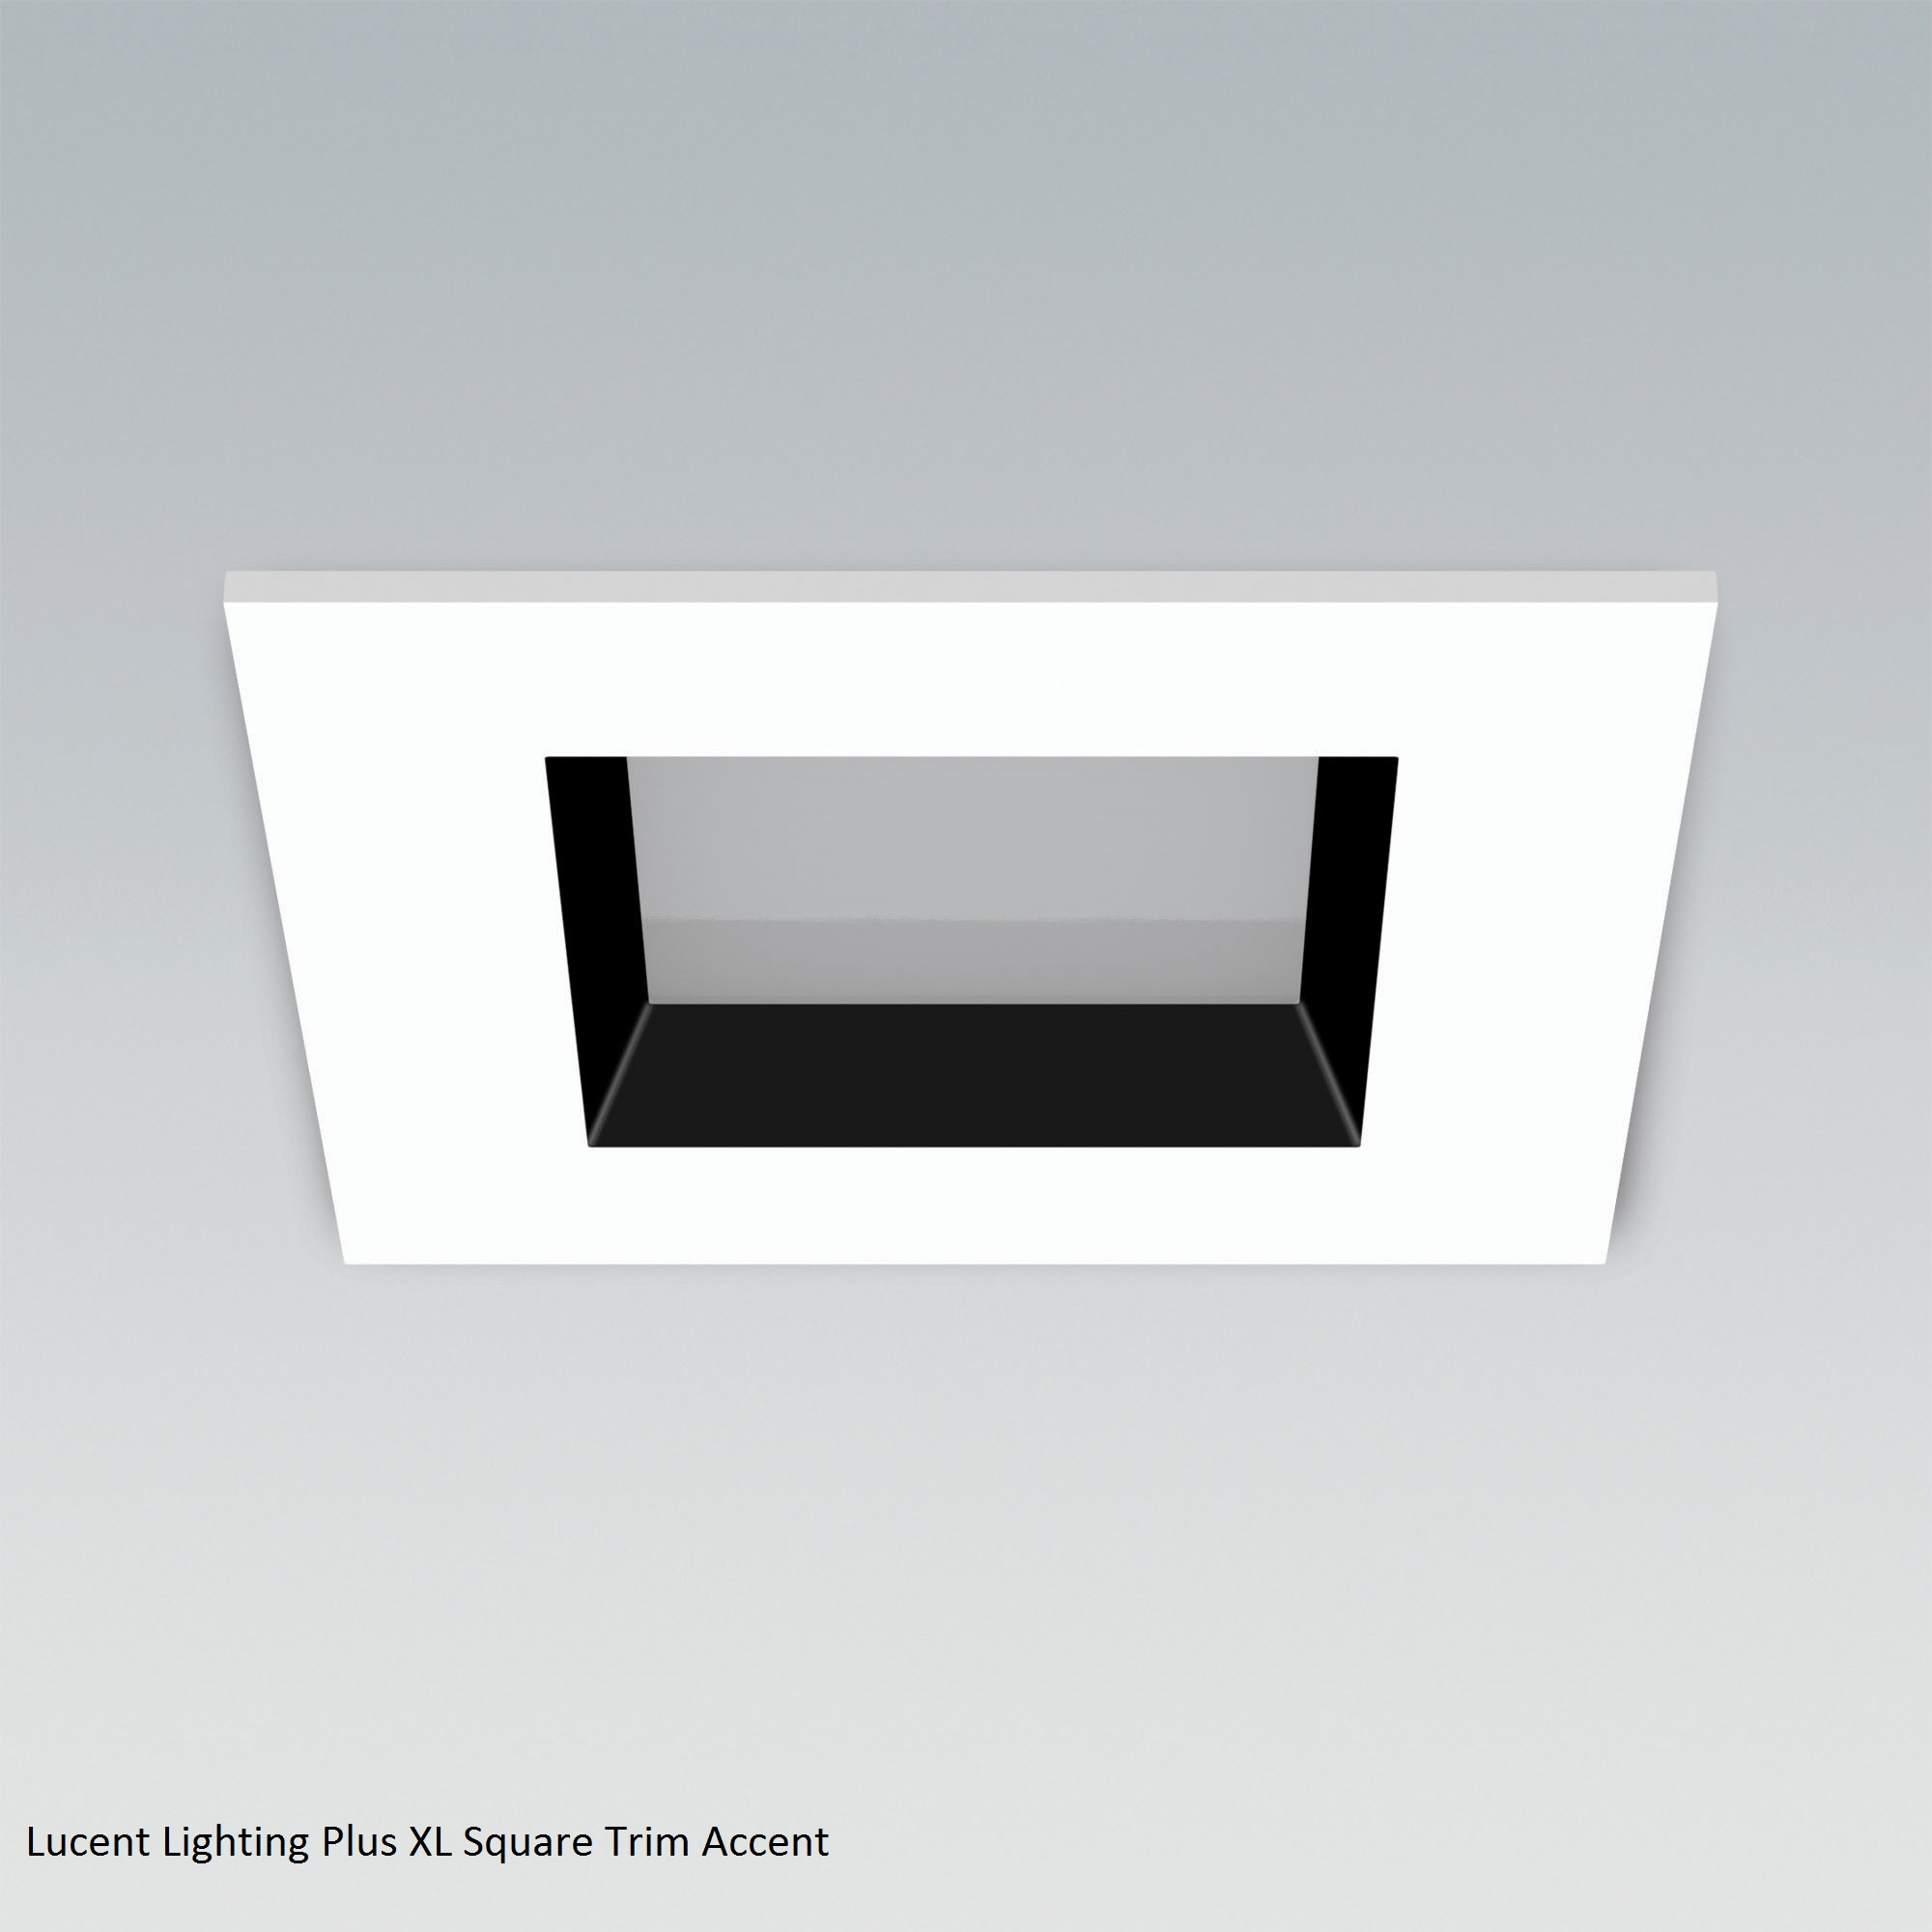 lucent-lighting-plus-xl-square-trim-accent